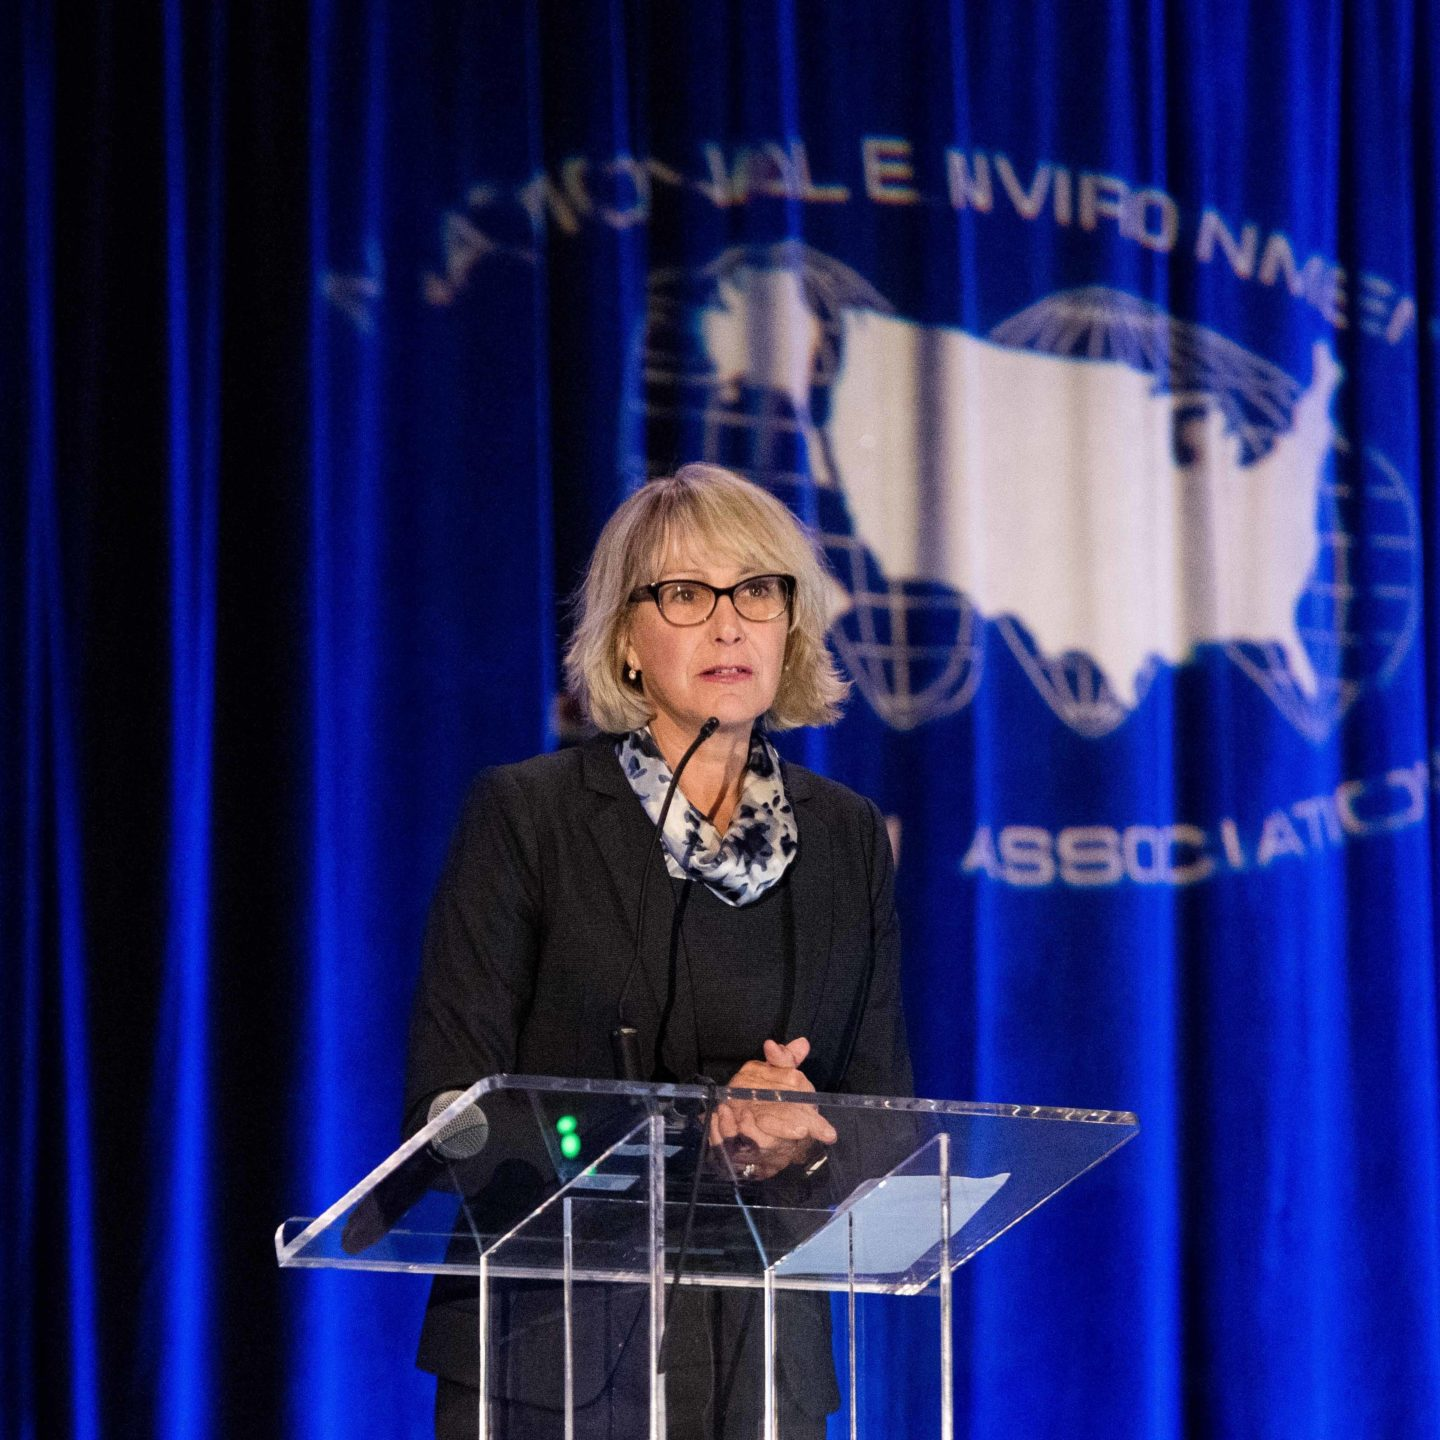 Dr. Michèle Prévost presents at the 2019 Legionella Conference held in Los Angeles